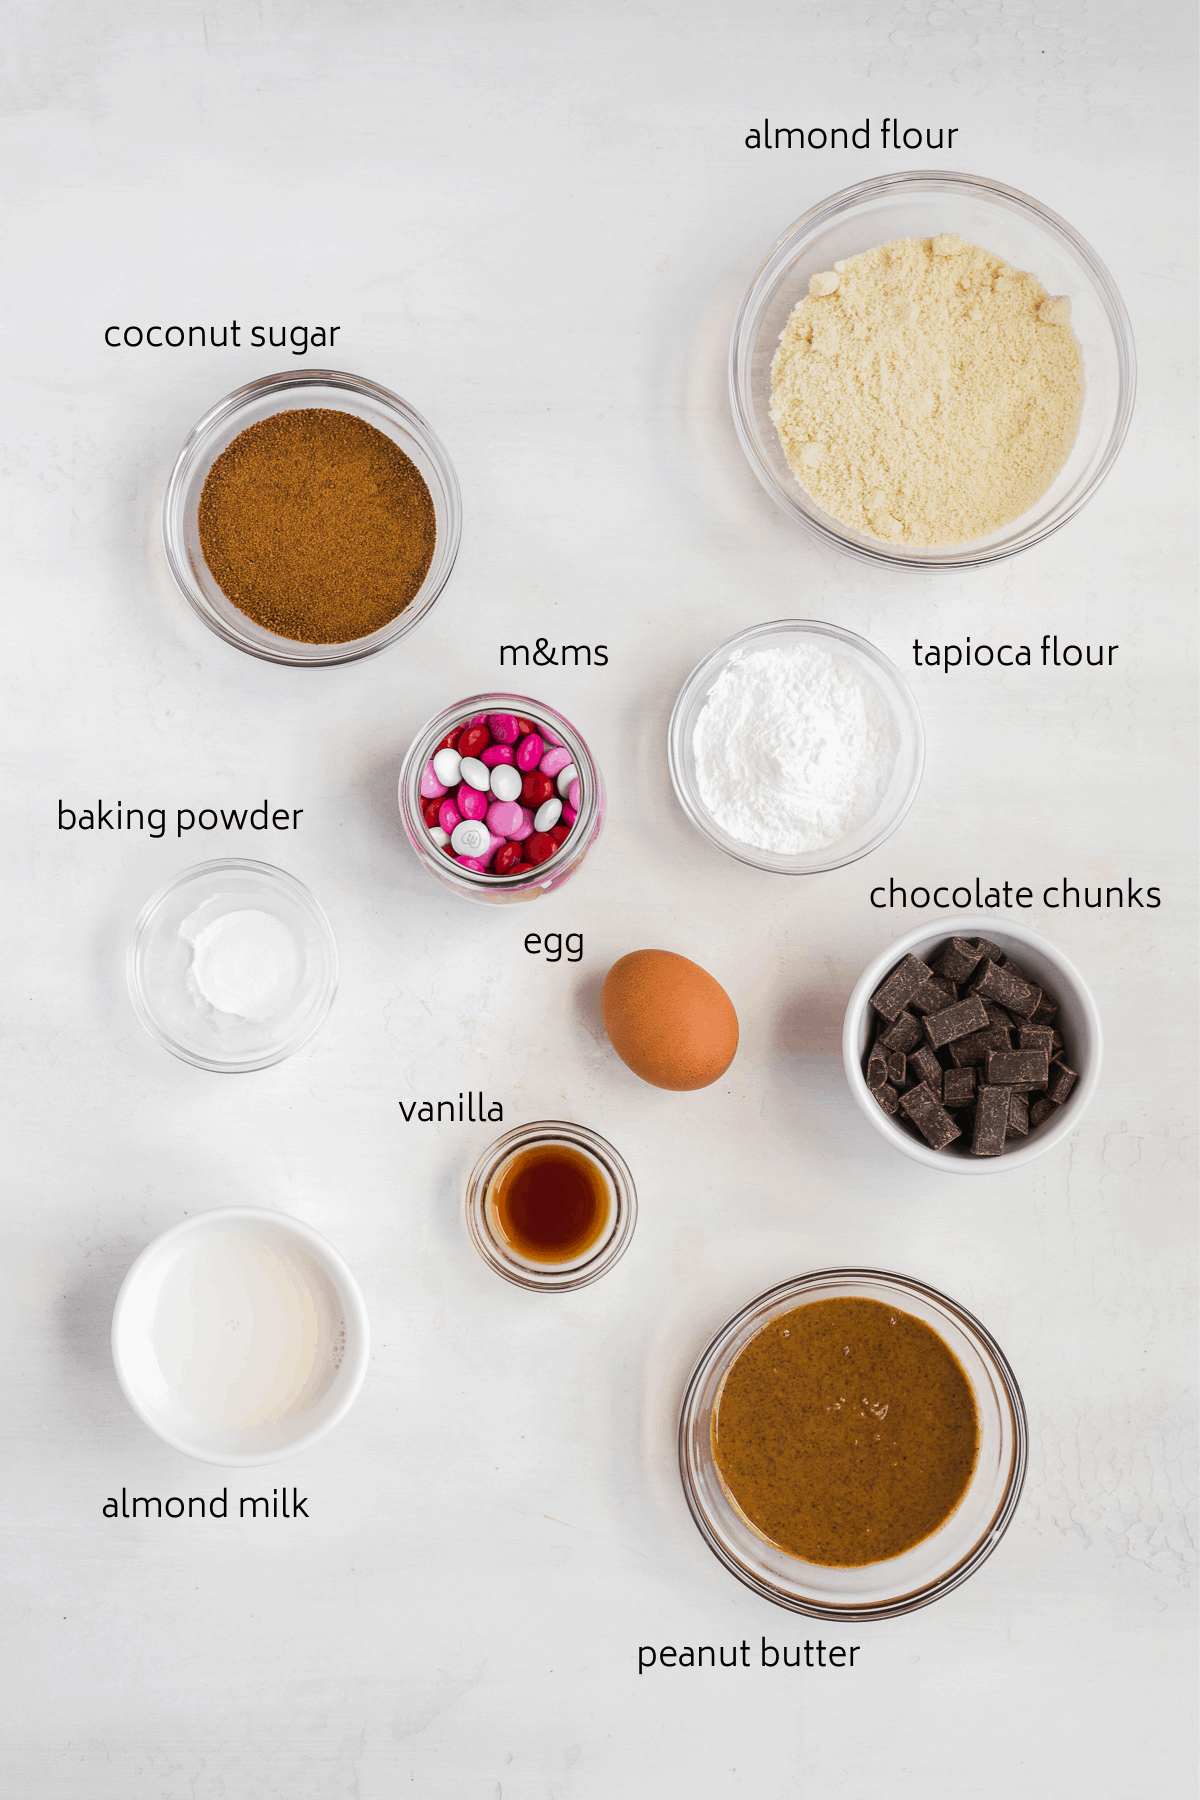 Image of ingredients labeled in glass bowls on a white surface.